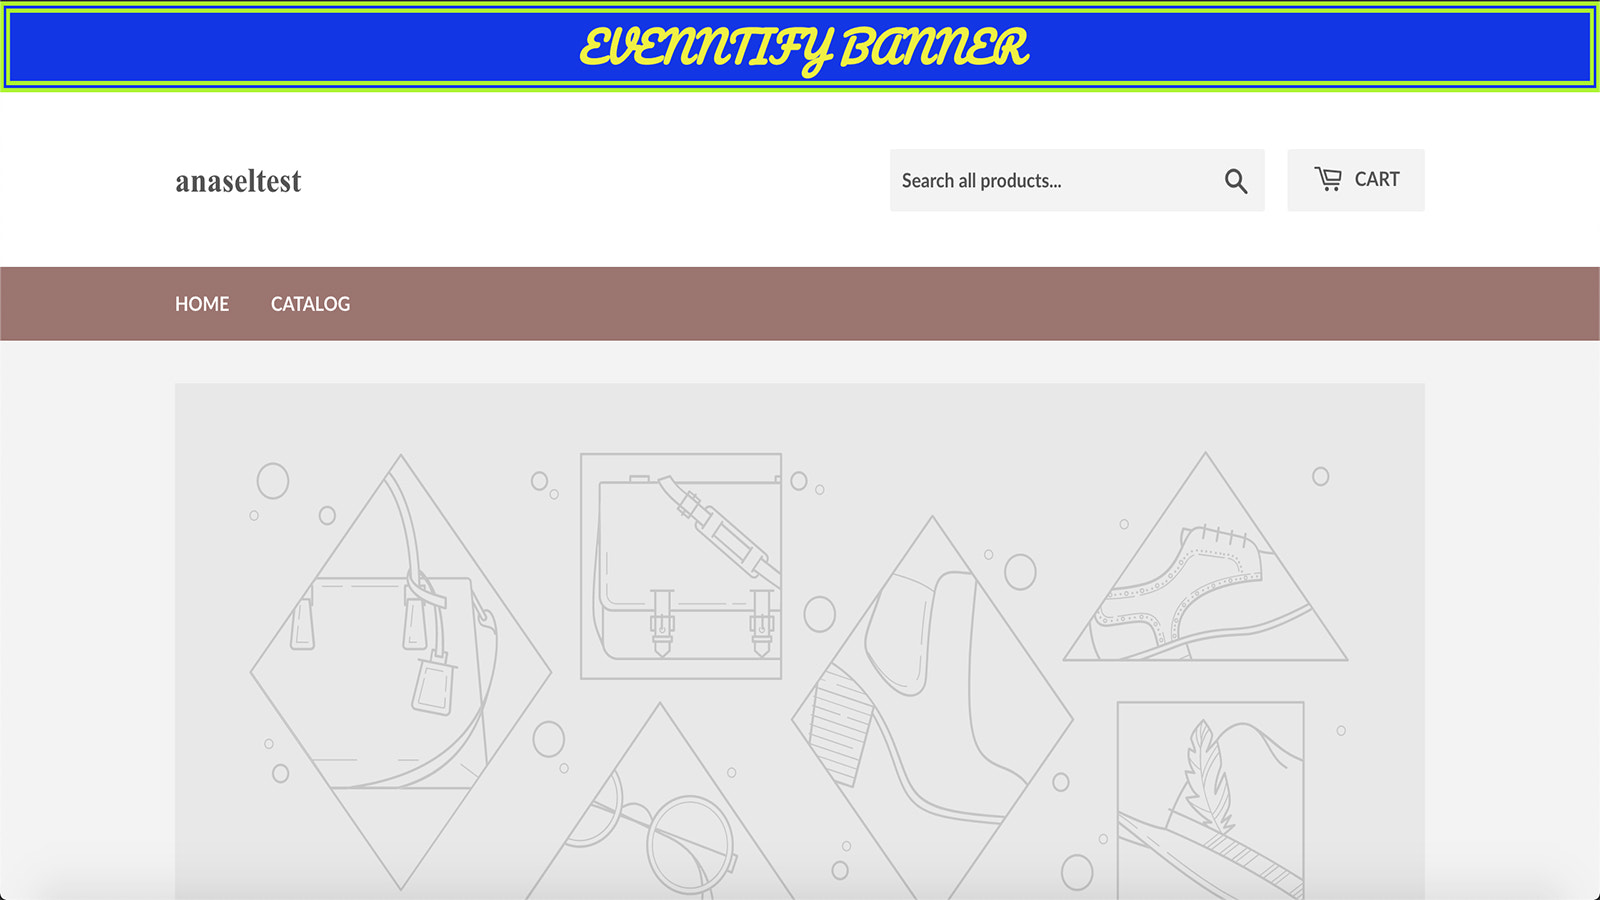 An example of a Shopify Store using Evenntify banner.